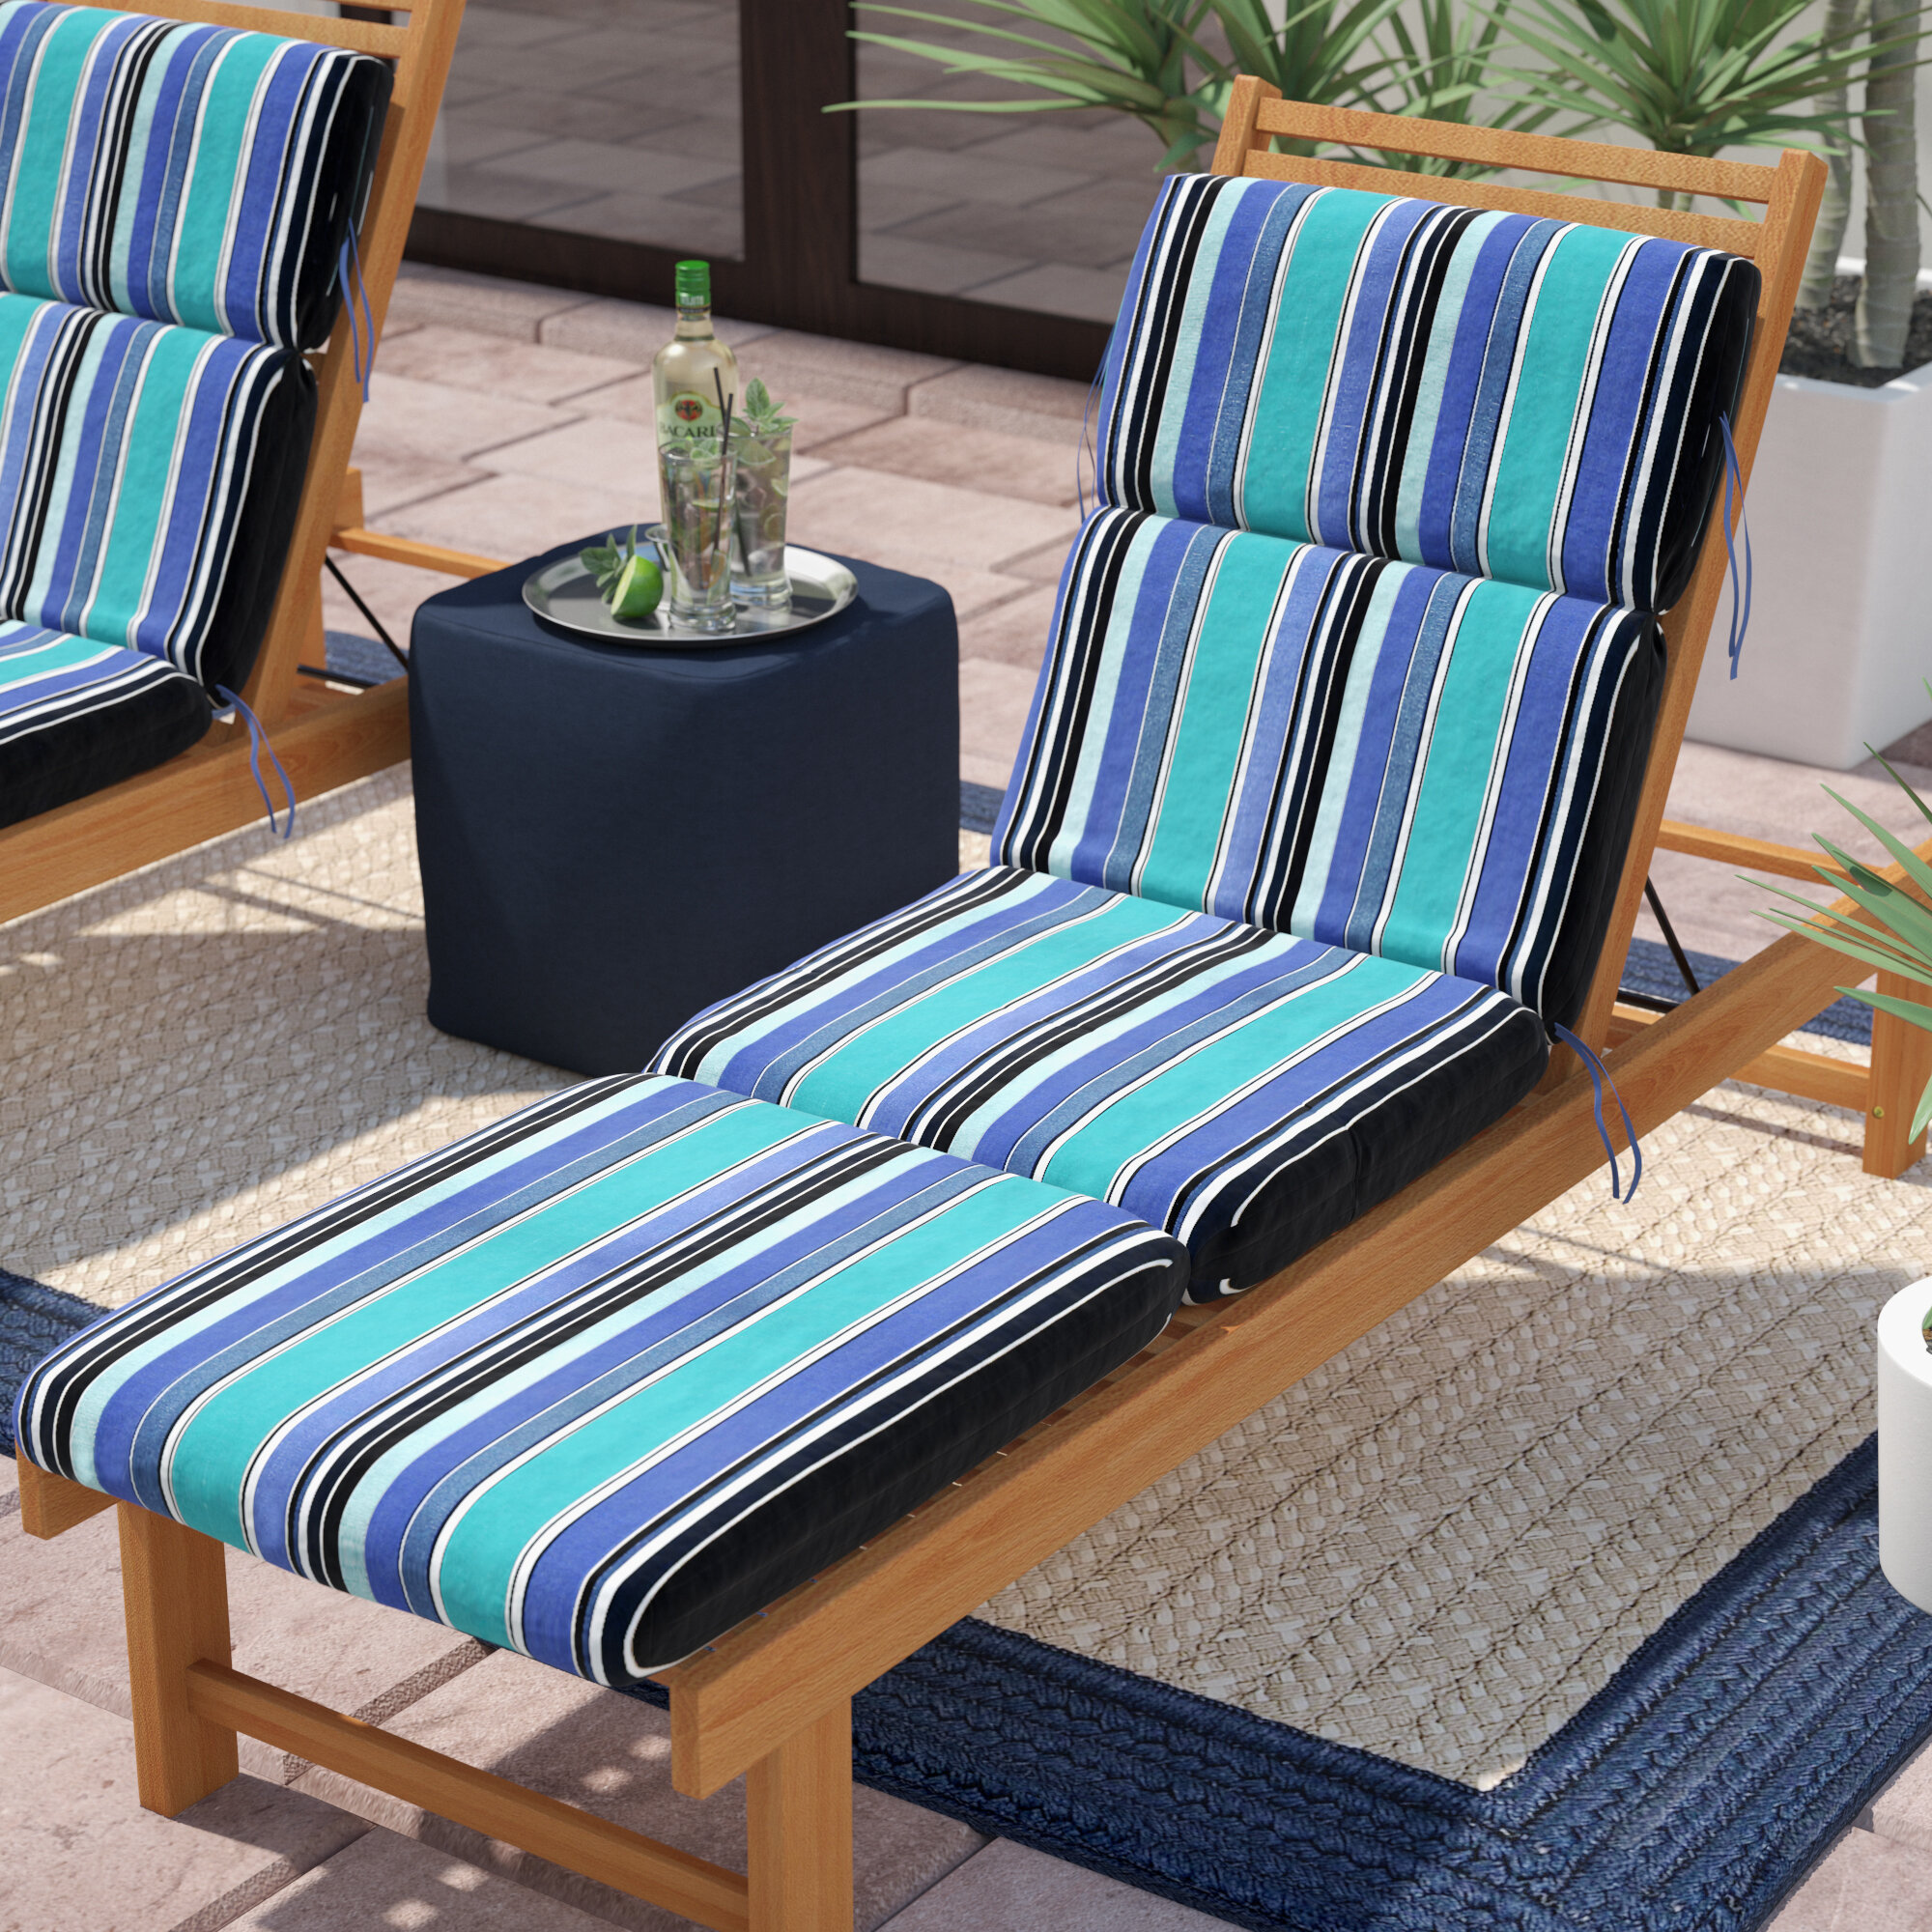 - Beachcrest Home Dolce Oasis Indoor/Outdoor Sunbrella Chaise Lounge